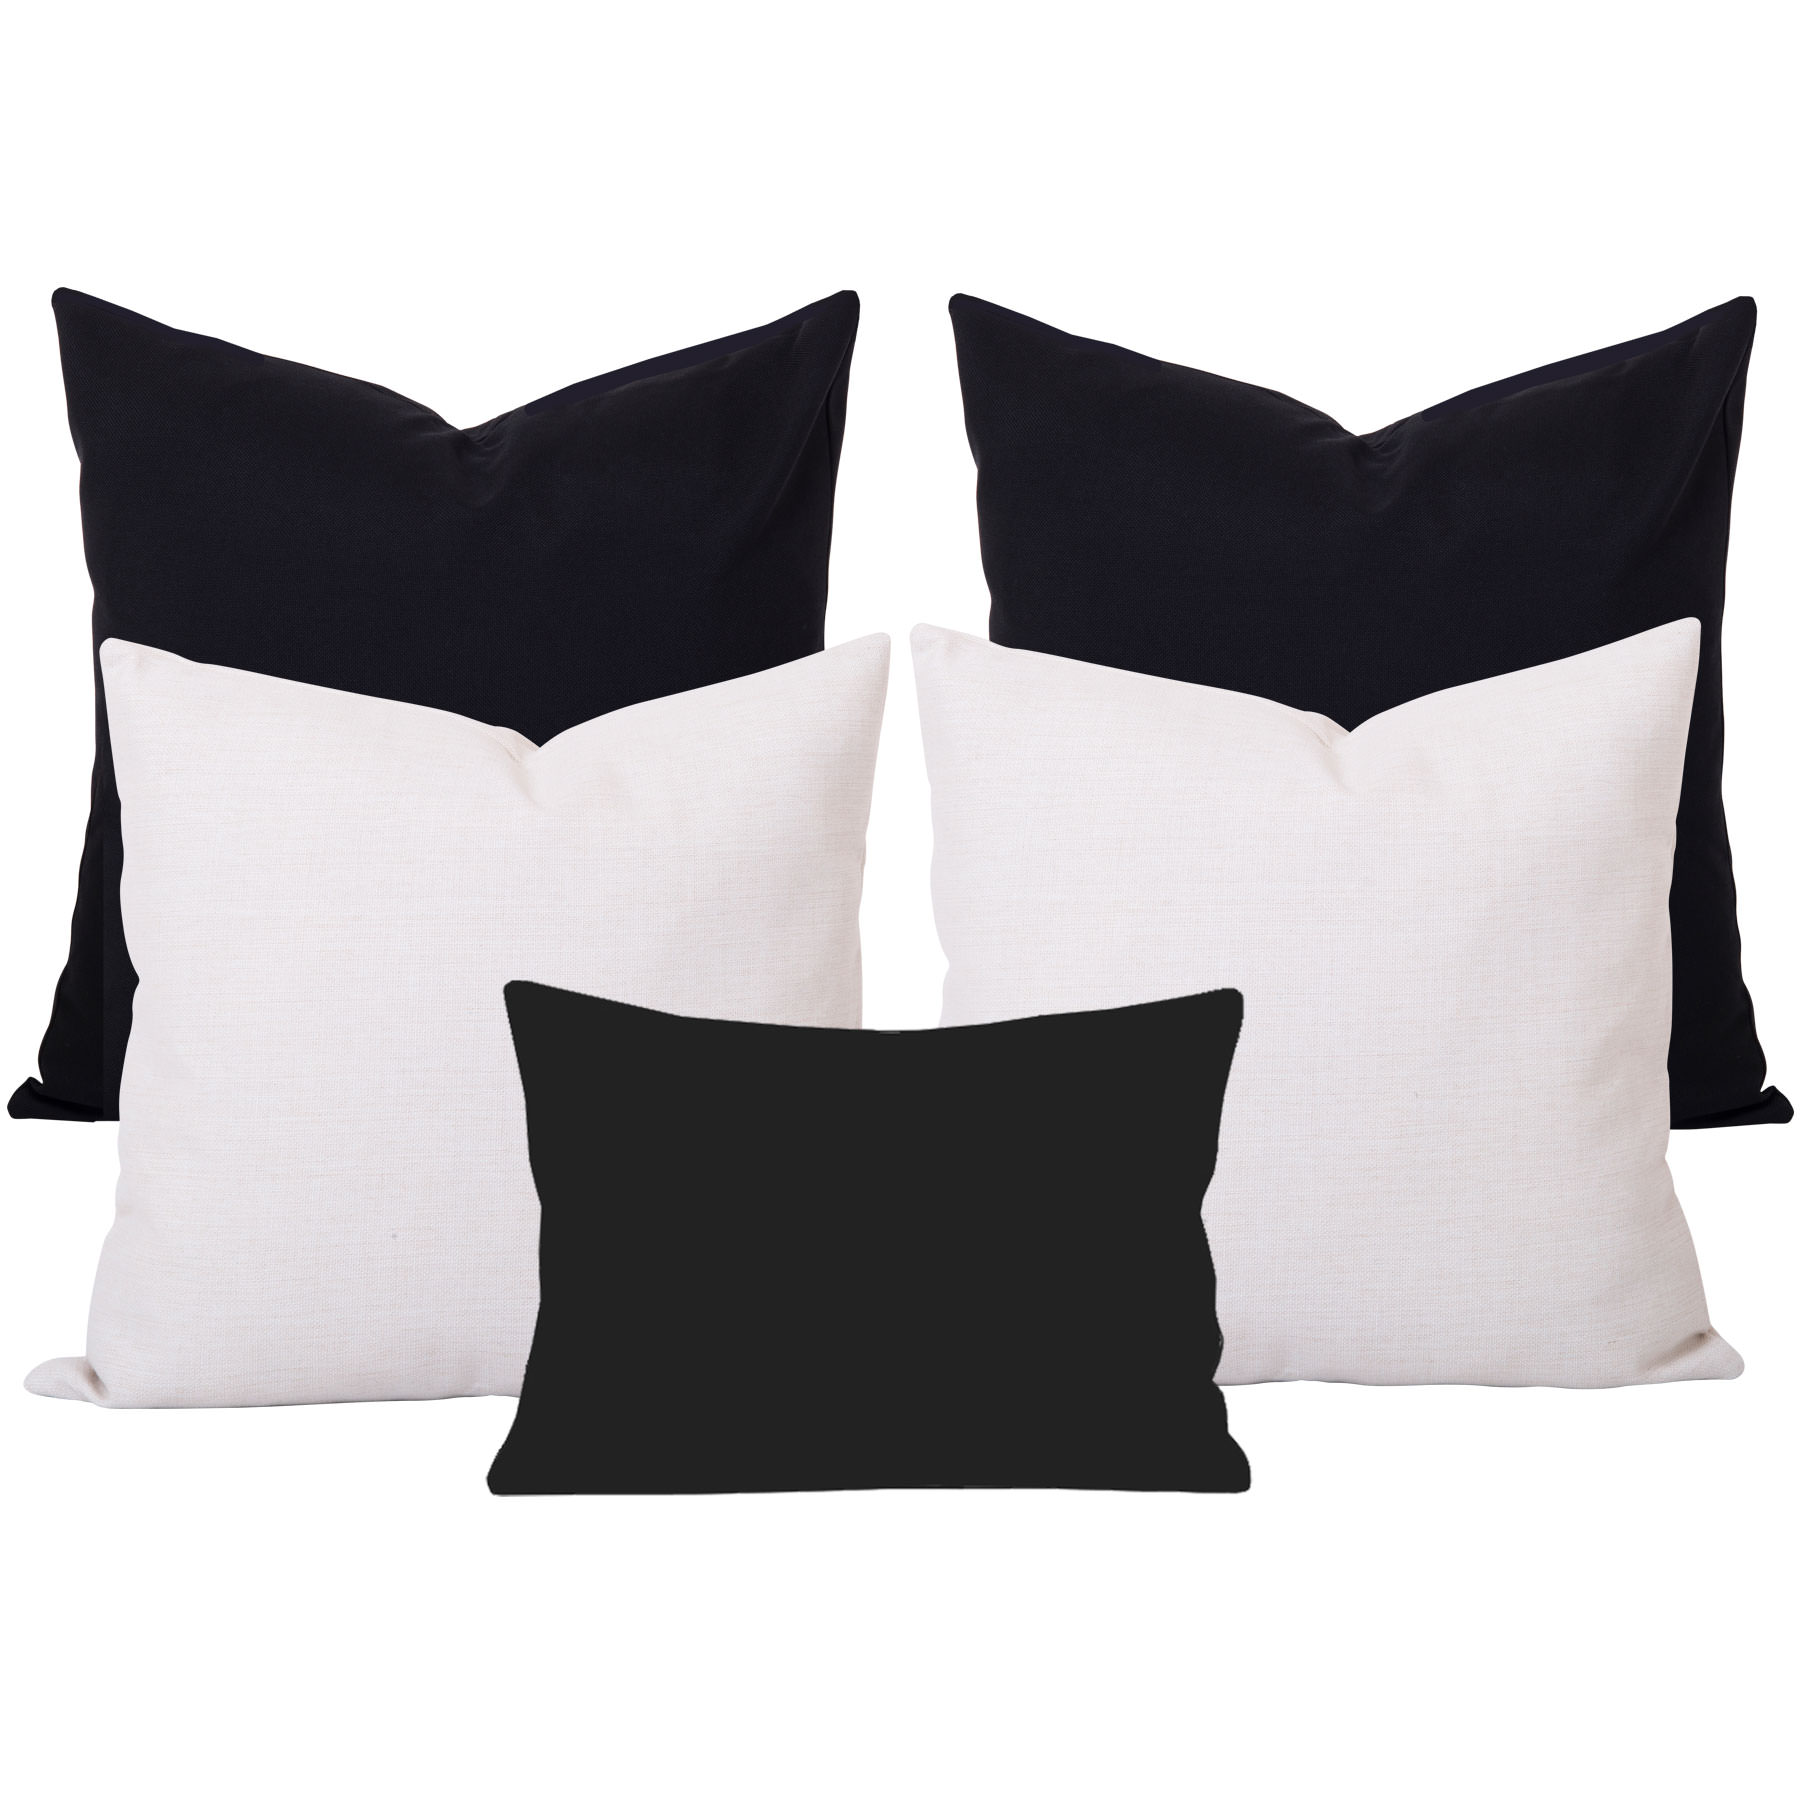 Georgia-Plain-Black-and-White-5-Cushion-Set